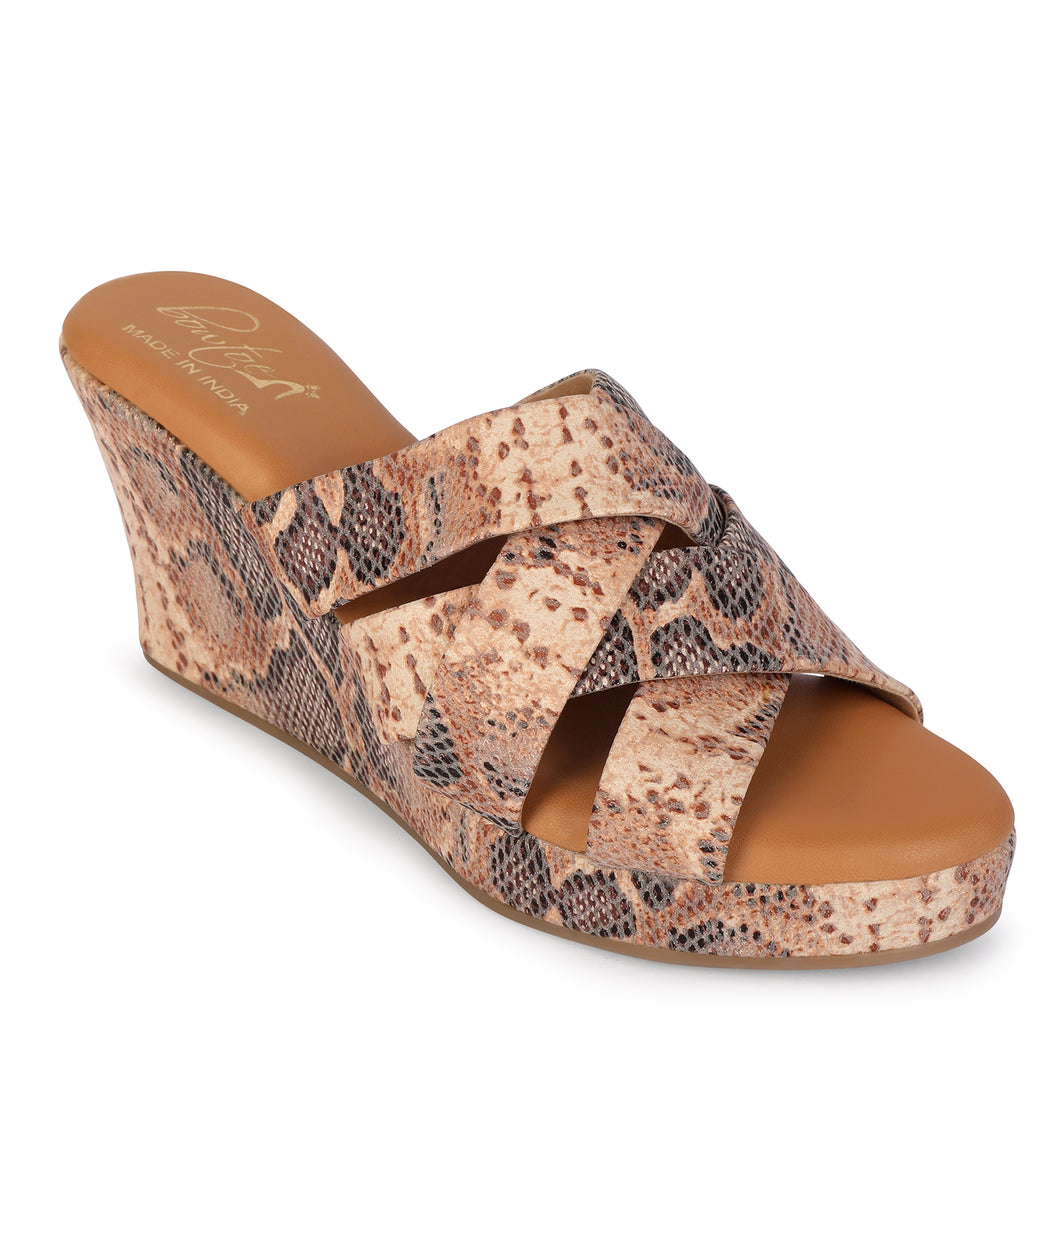 Signature Street Wedges - Brown